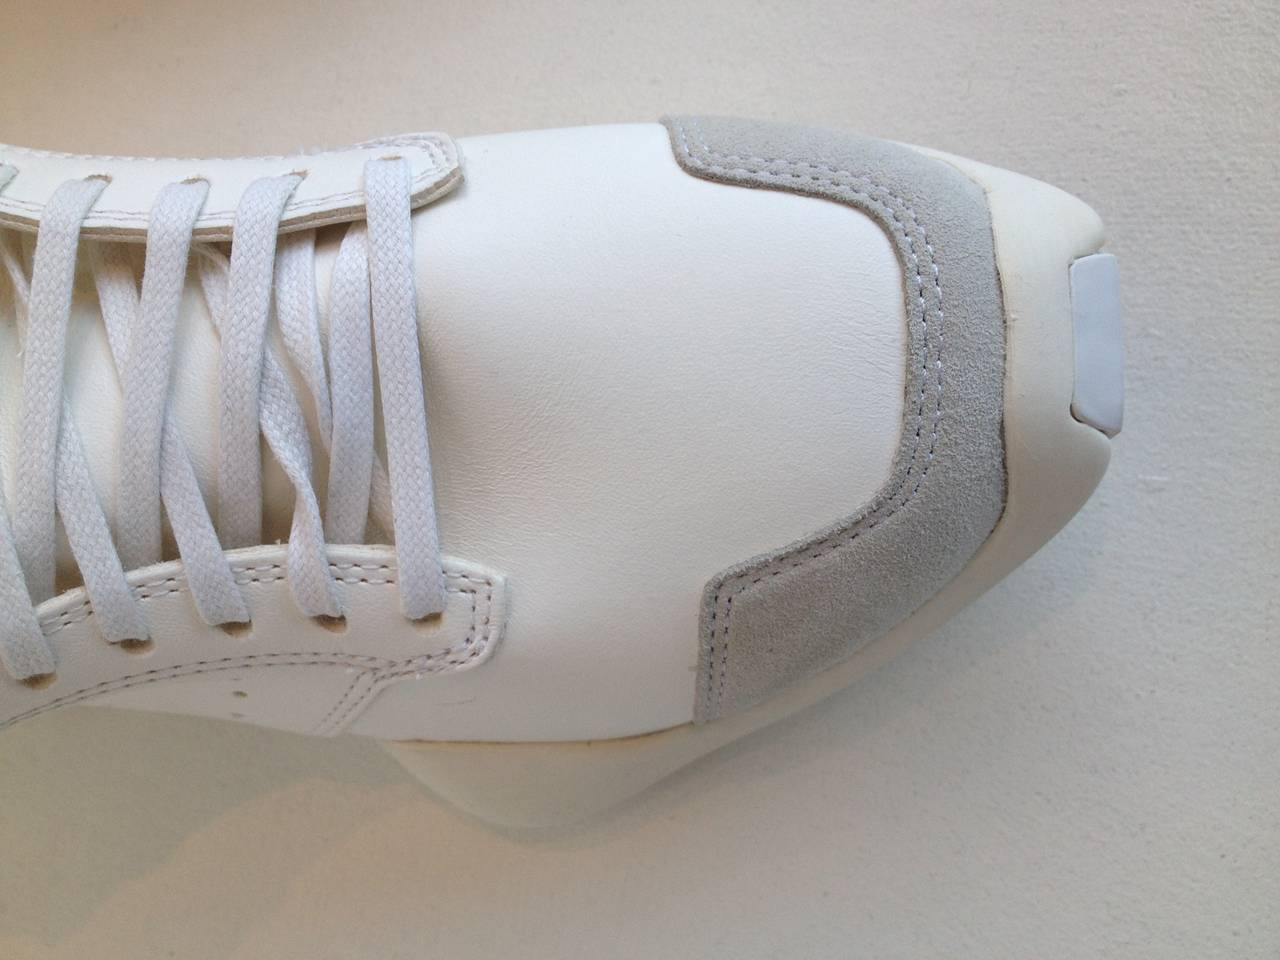 Rick Owens for Adidas White Puffy Sneakers 5